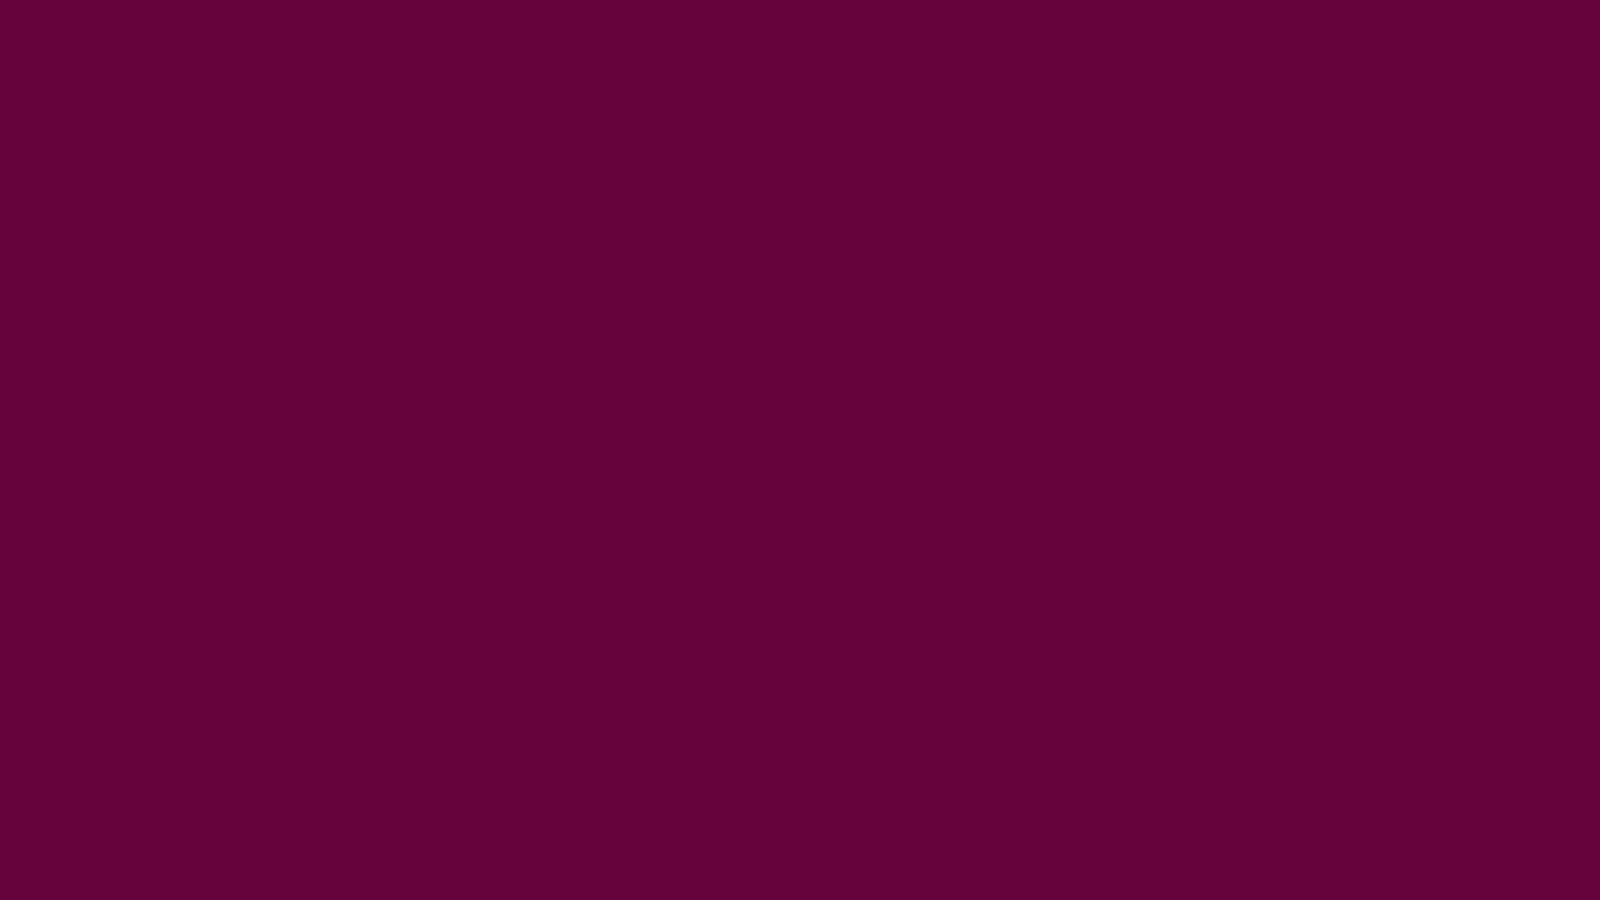 1600x900 Tyrian Purple Solid Color Background